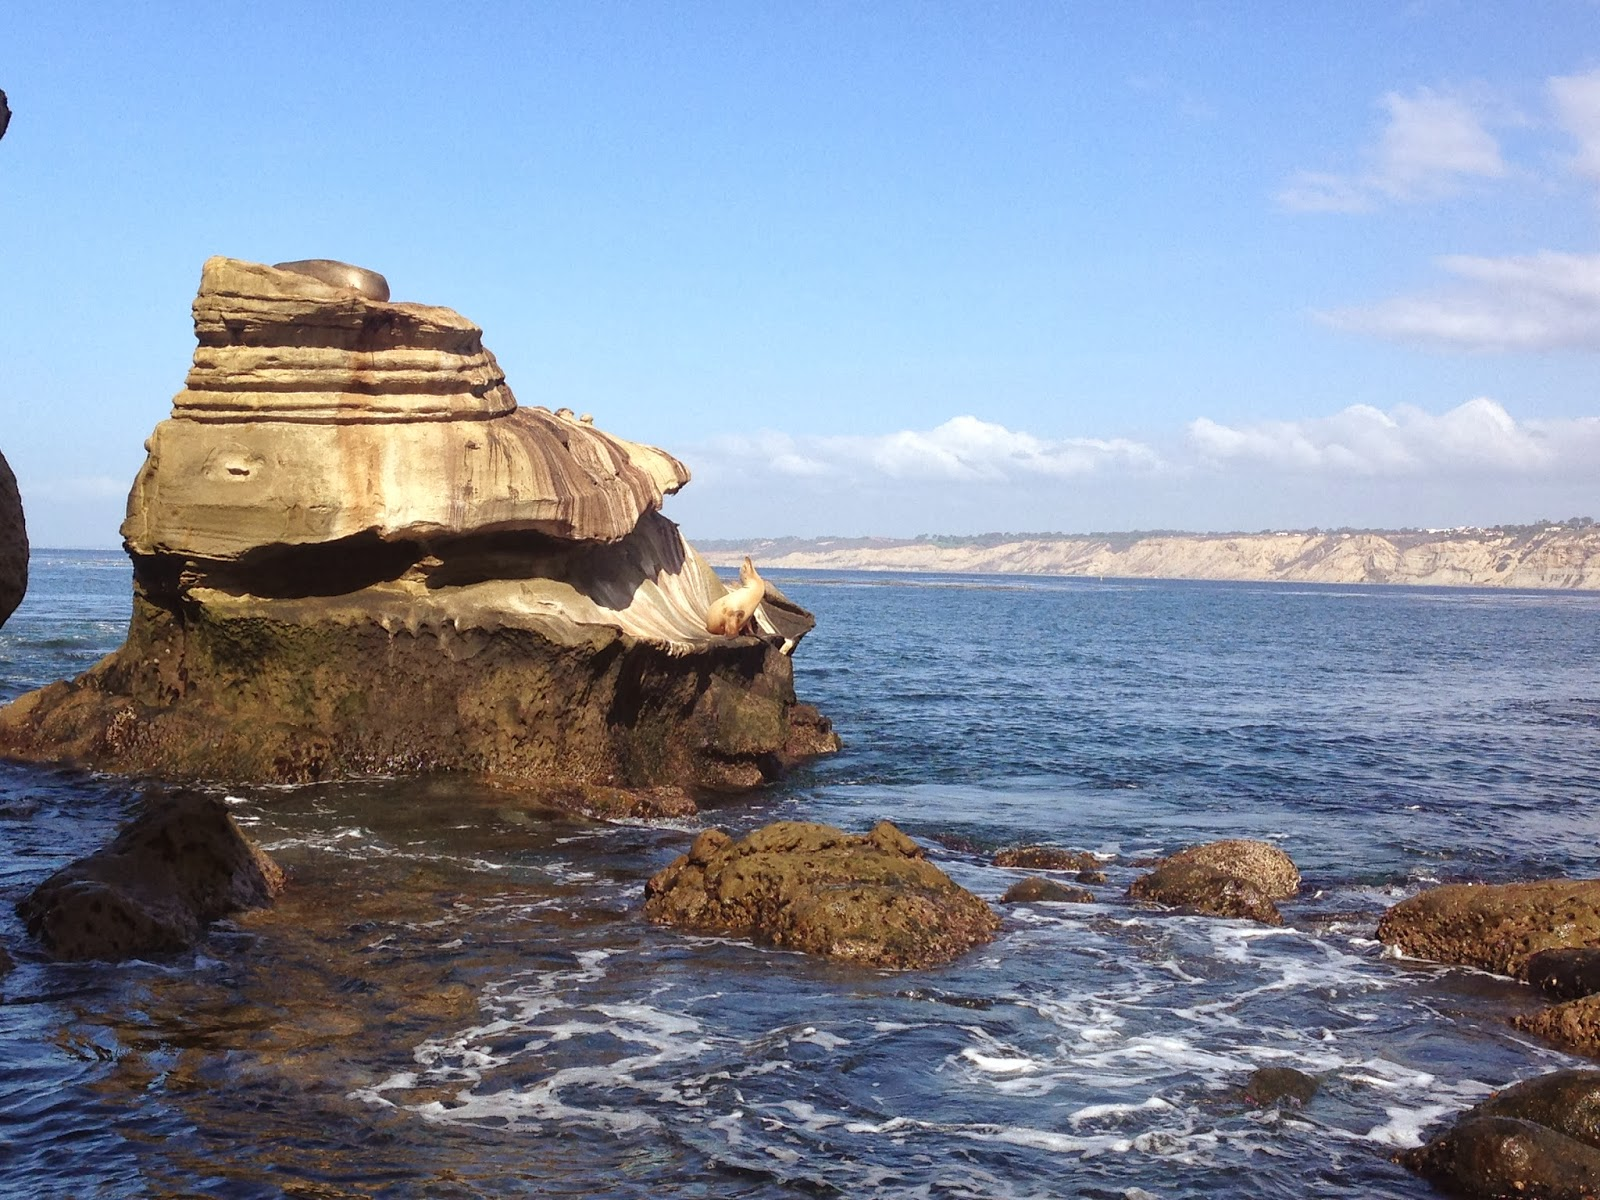 travel locations to visit: best places to visit or go in san diego